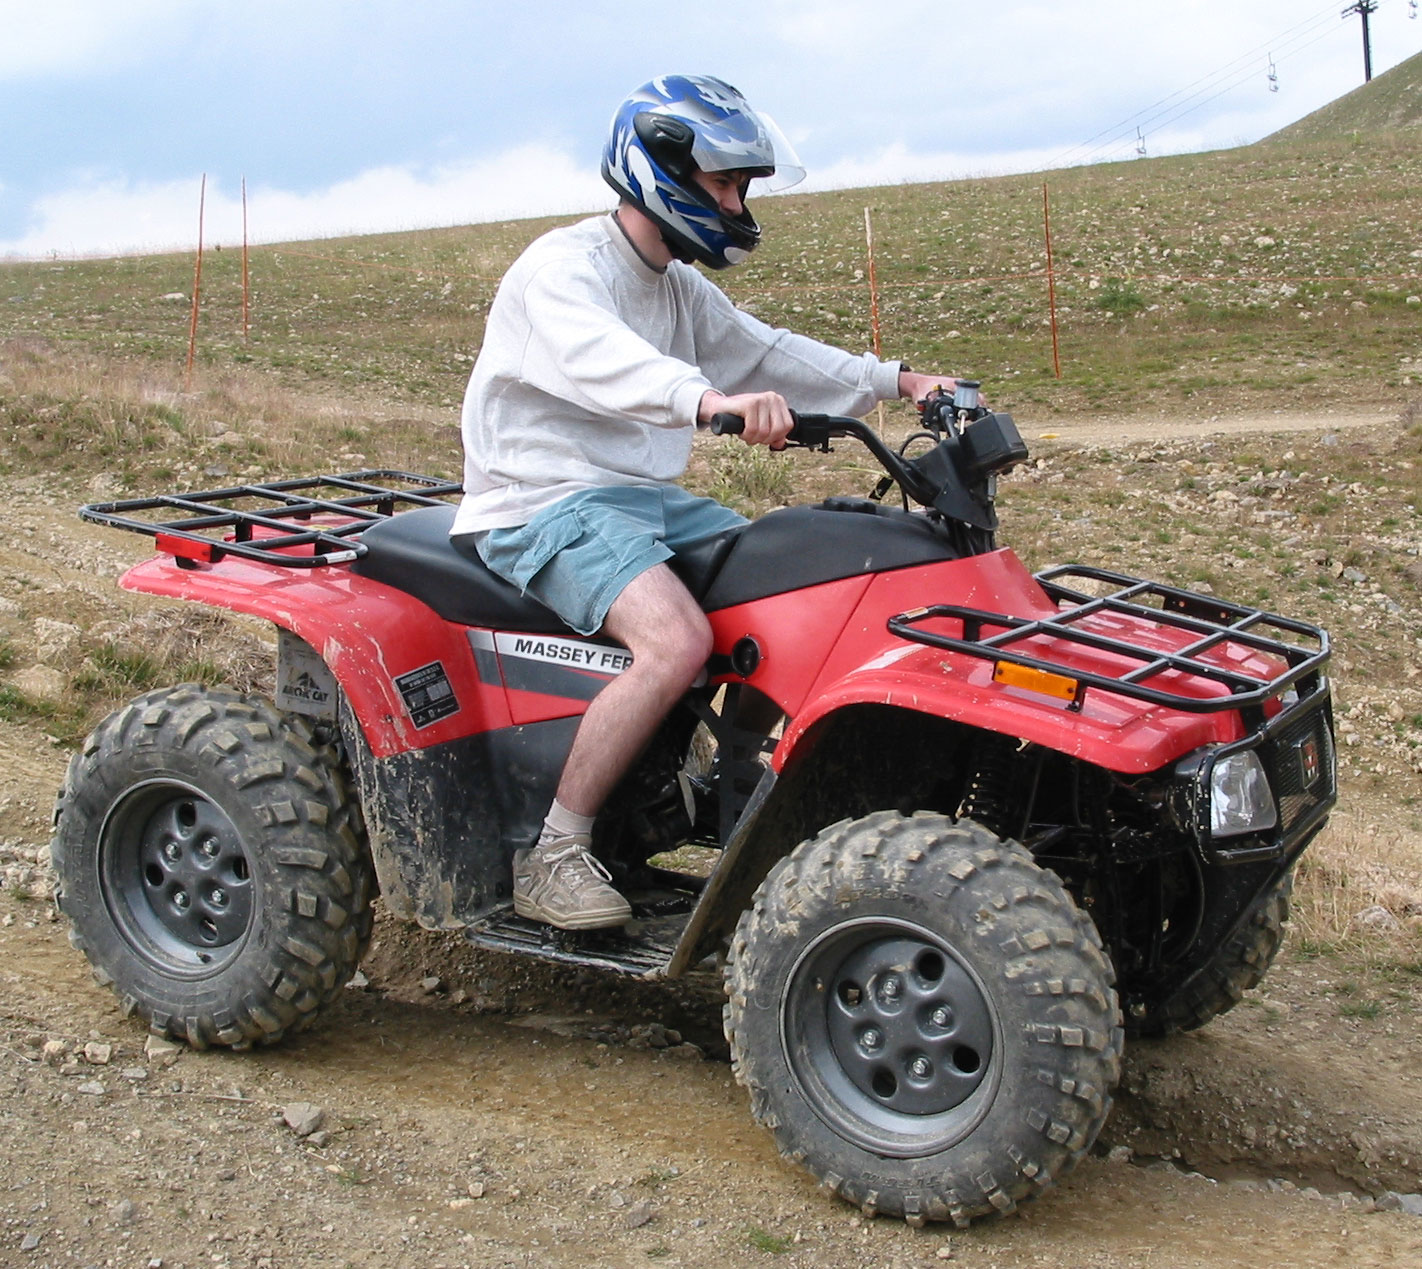 http://perso.crans.org/~martin/Photos/sport/images/HQ/08_2003-08_Quad-casque.jpg